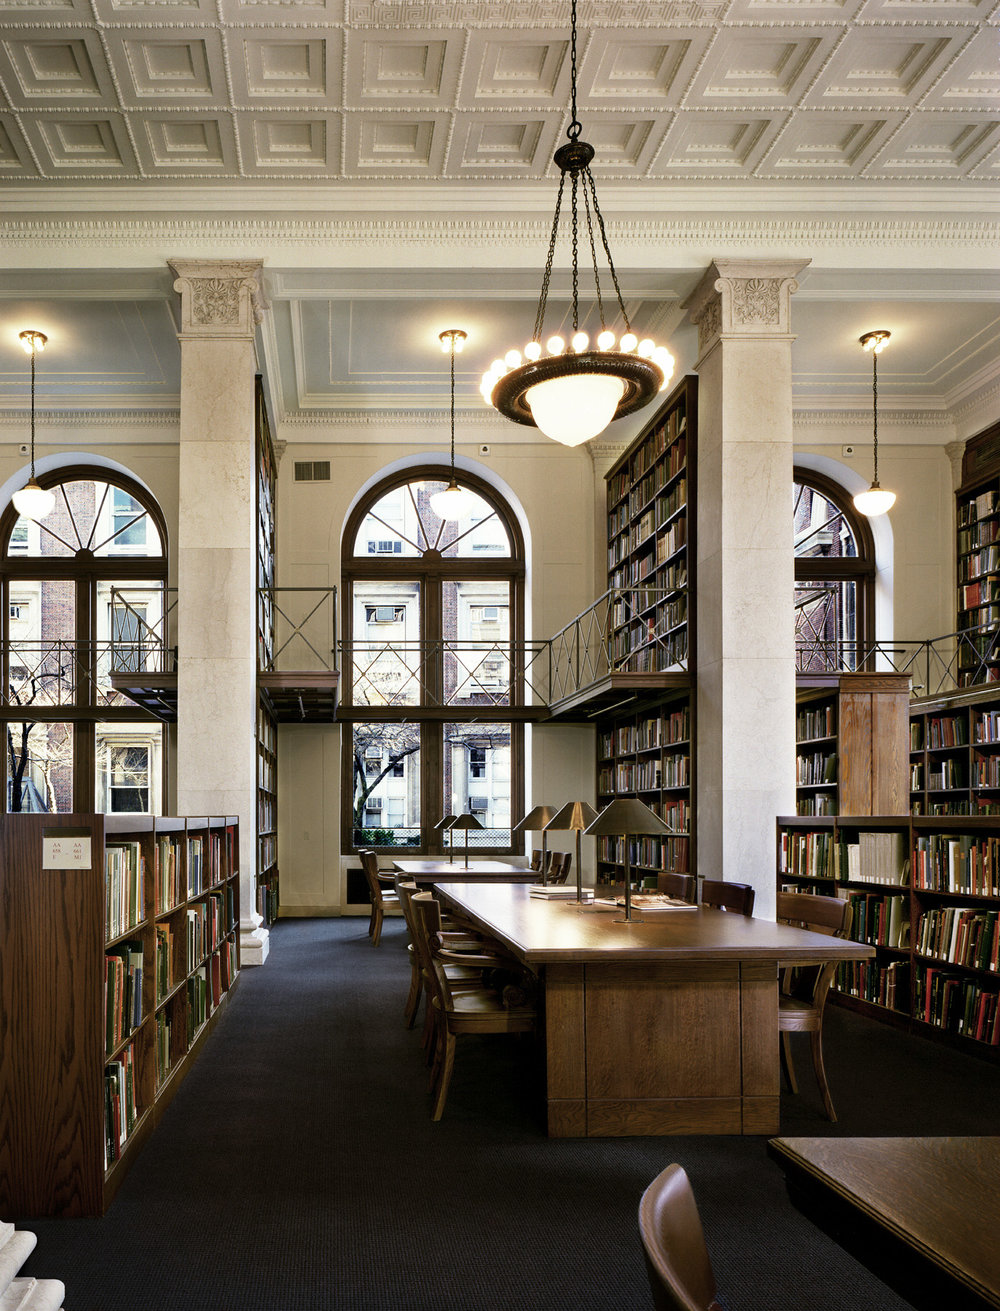 The Avery Architectural & Fine Arts Library at Columbia University